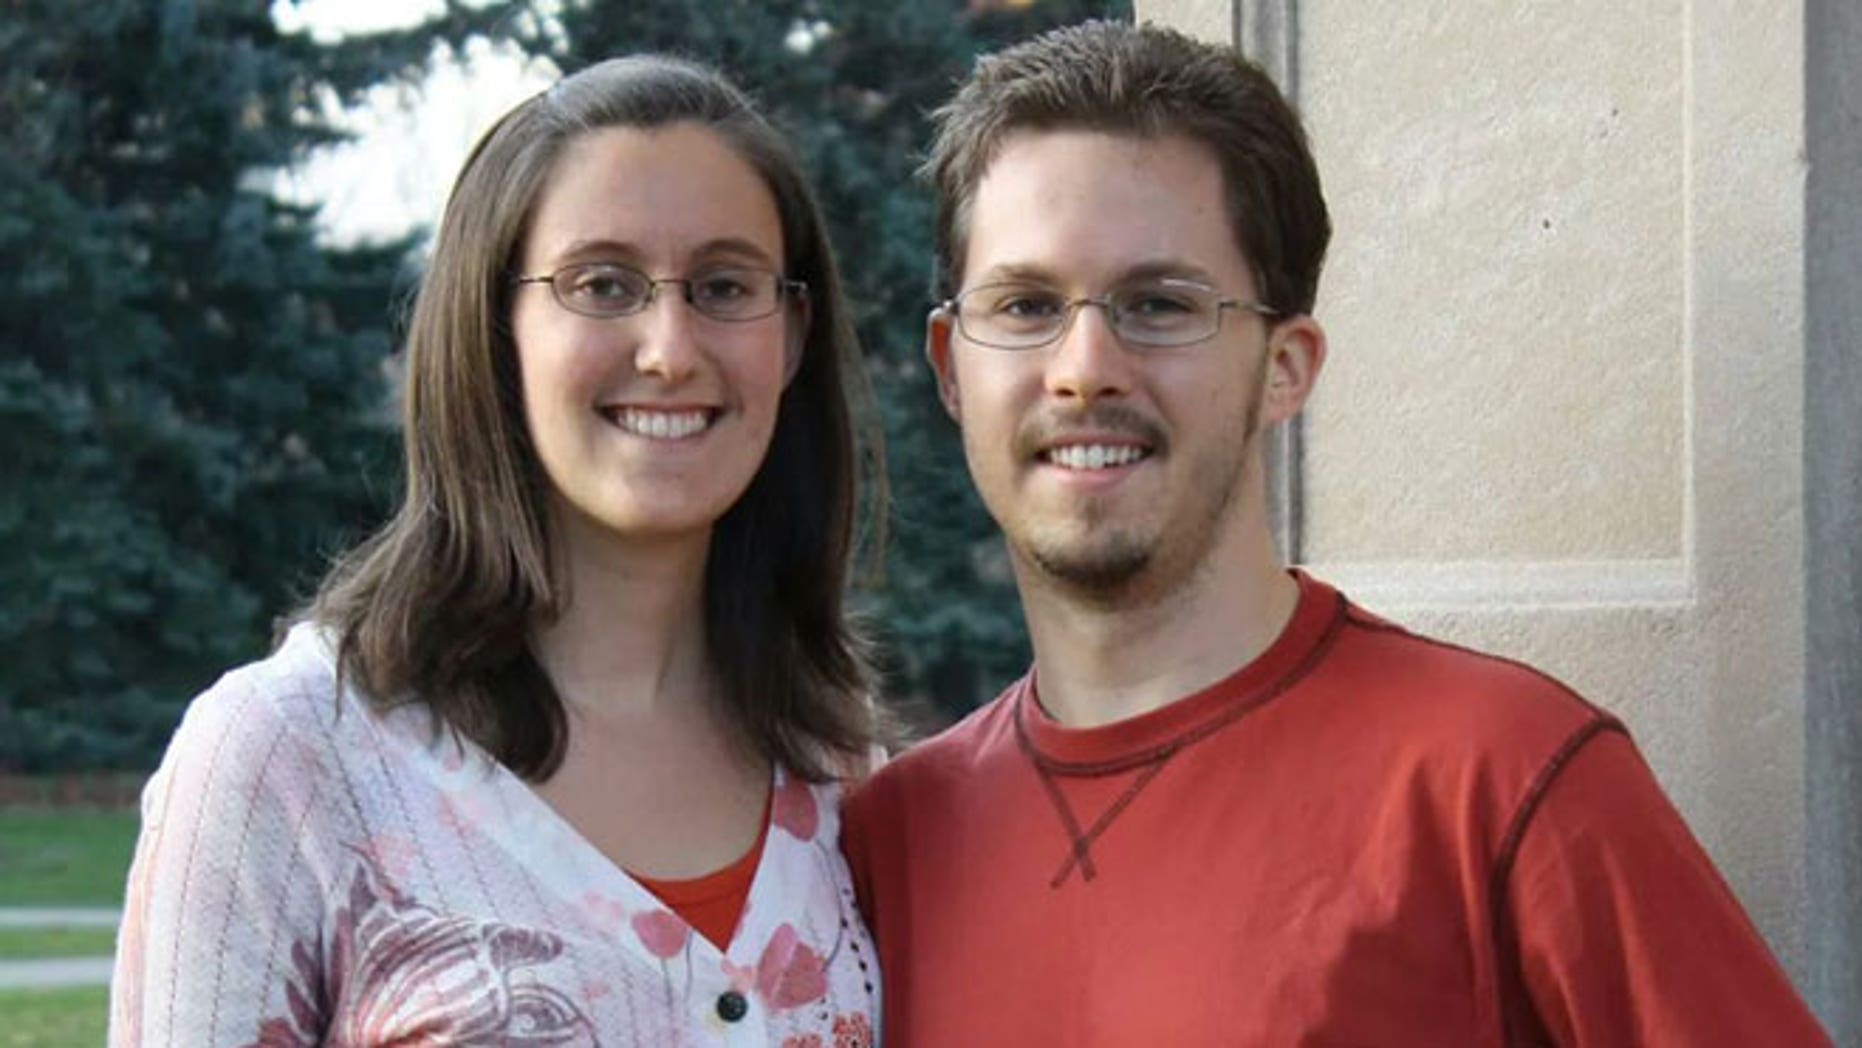 Christi and Andy Toth, 27 and 29 respectively, spent their fifth wedding anniversary in the hospital following Andy's heart transplant surgery.